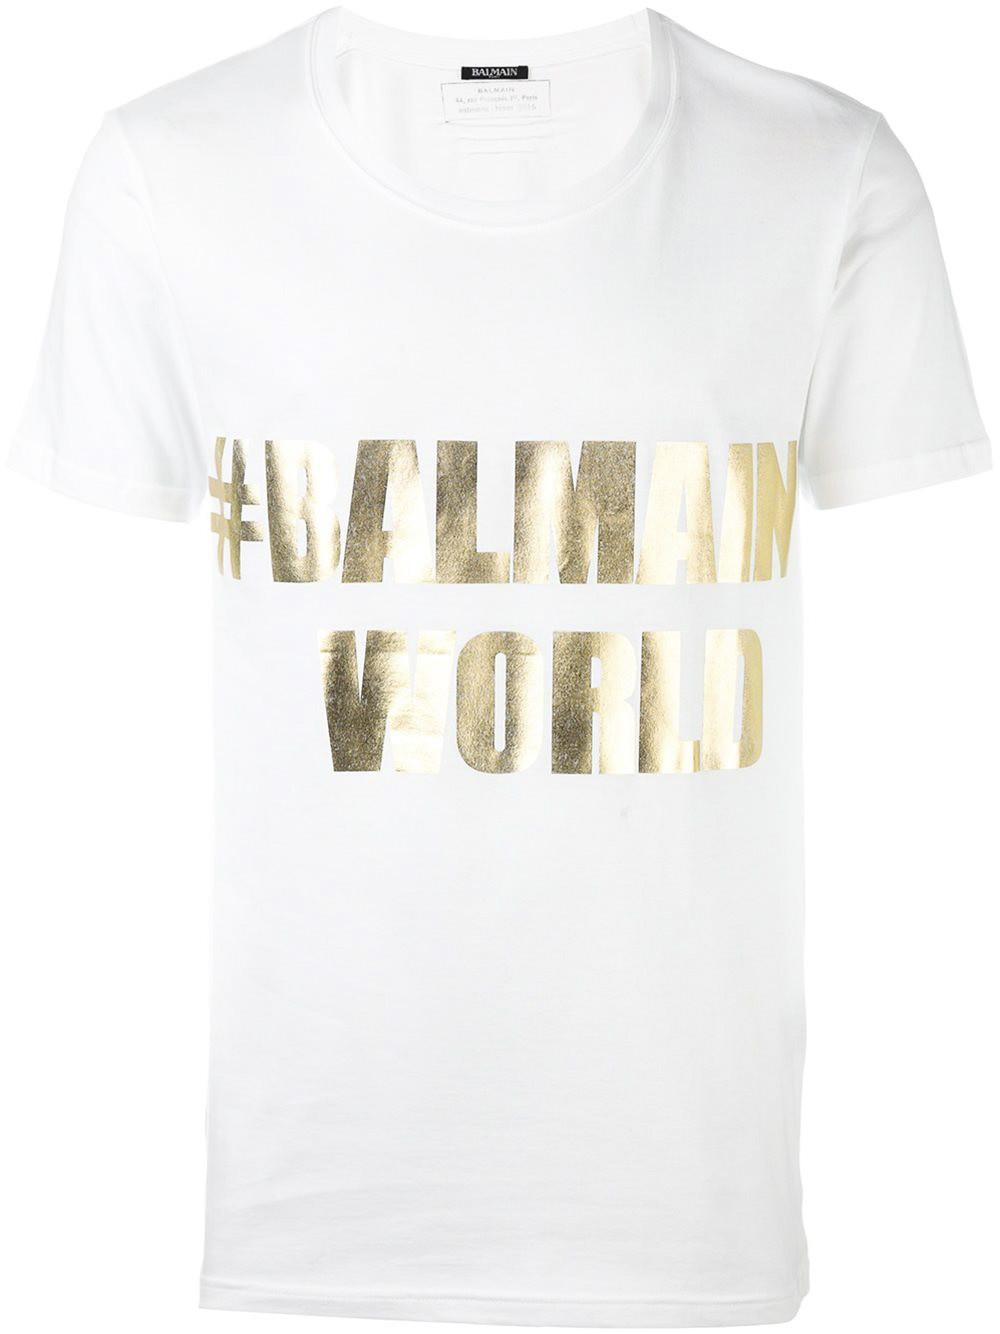 41e34f2b Balmain #world T-shirt in White for Men - Lyst